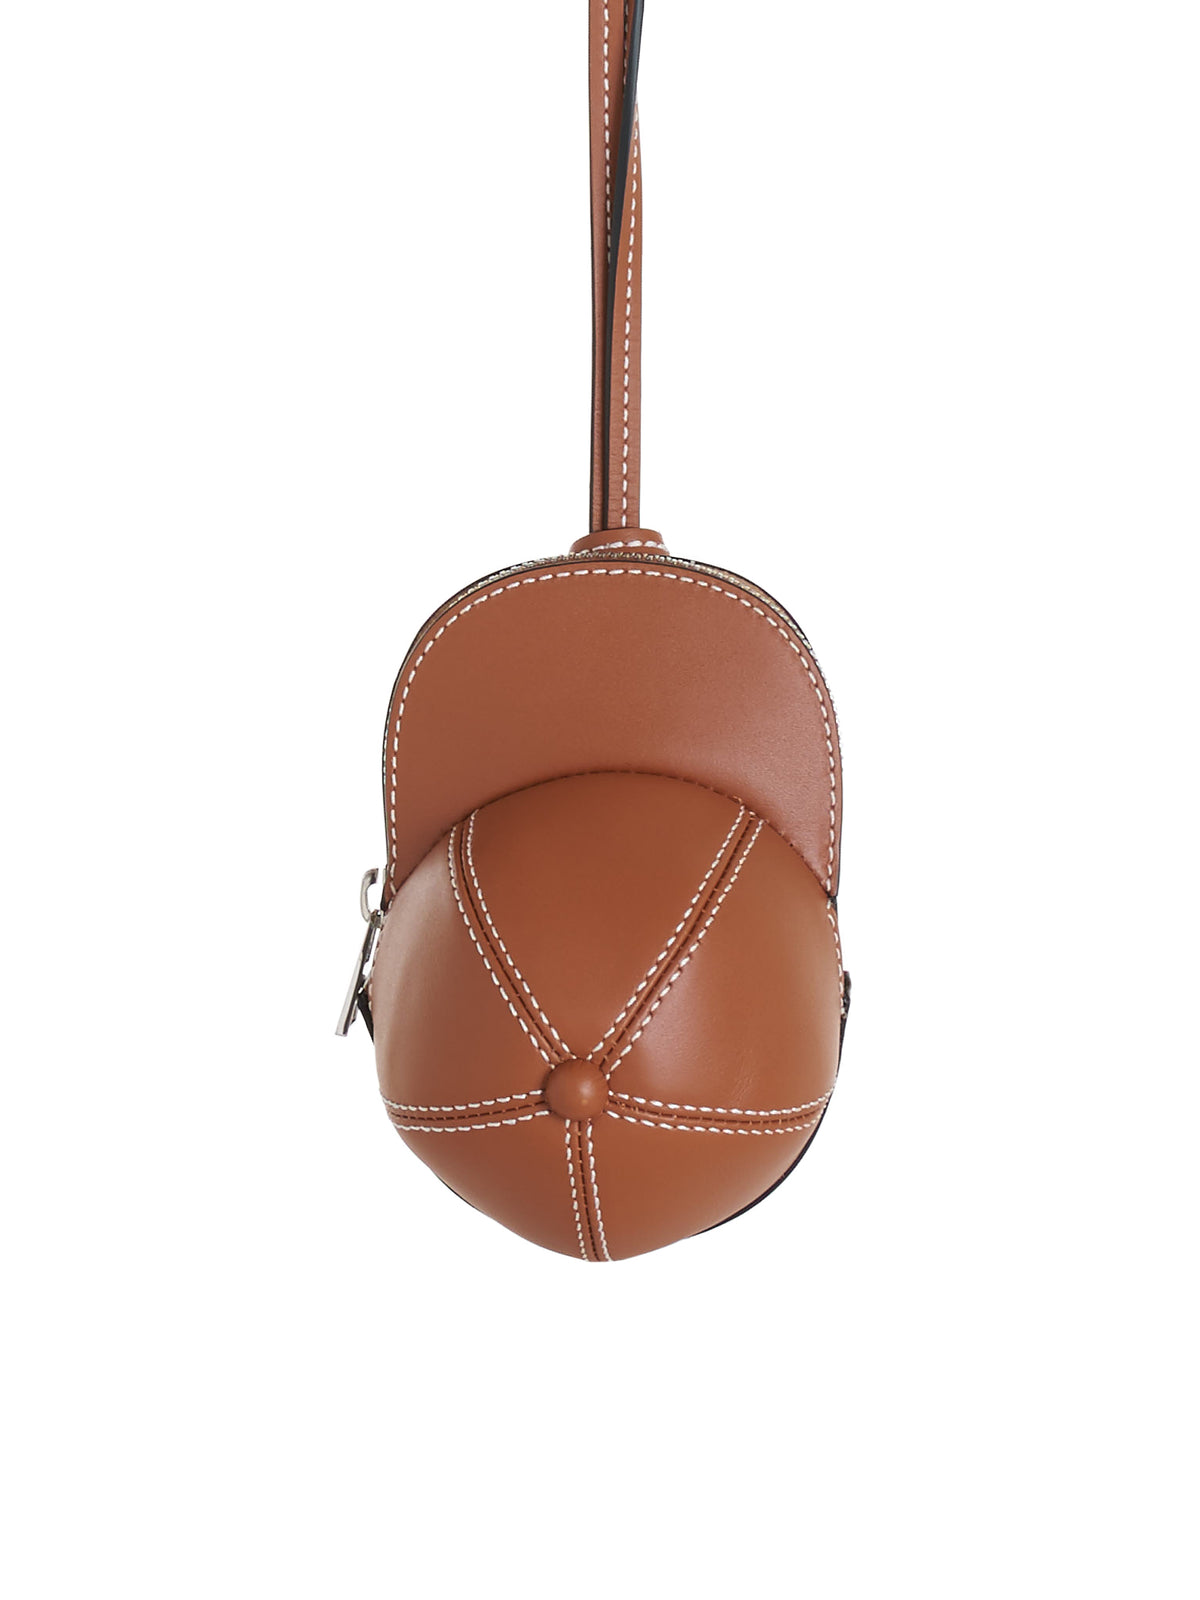 Mini Cap Bag (HB0232-623-PECAN)